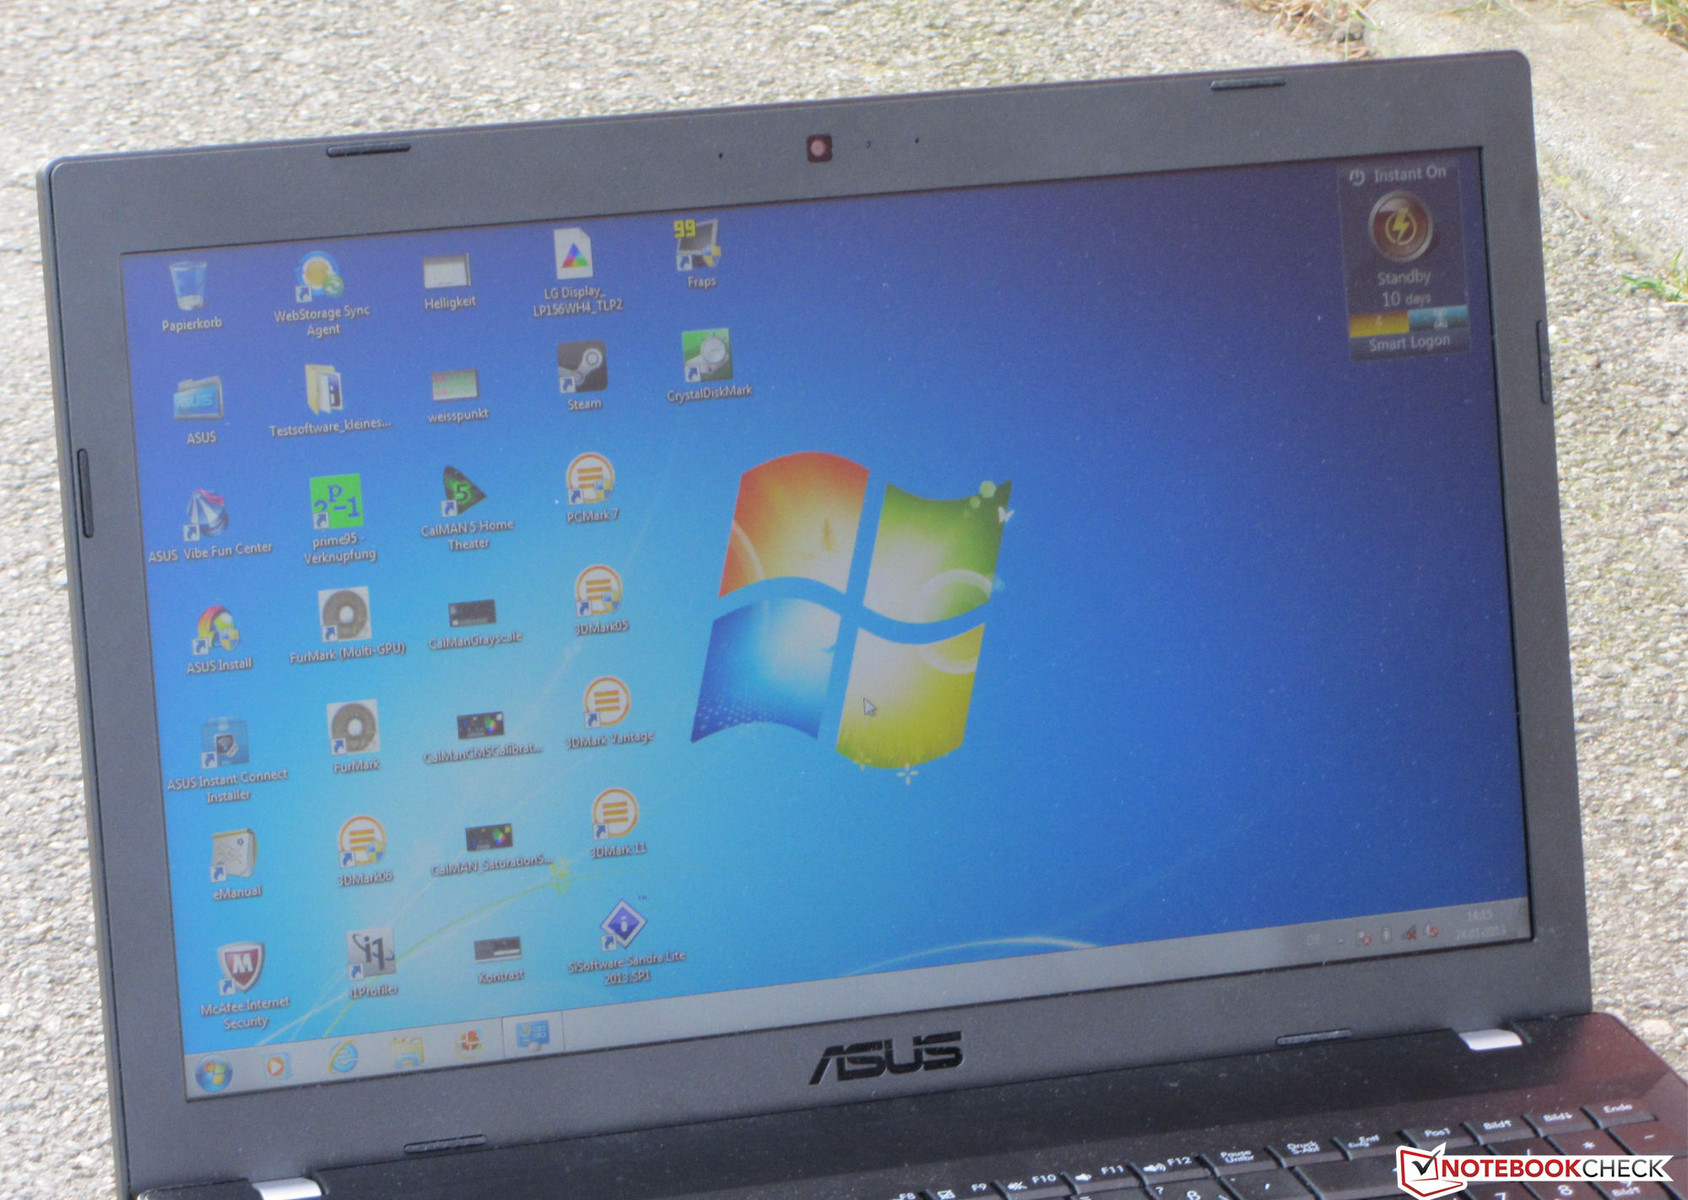 Asus B43E Notebook Fast Boot Windows 8 X64